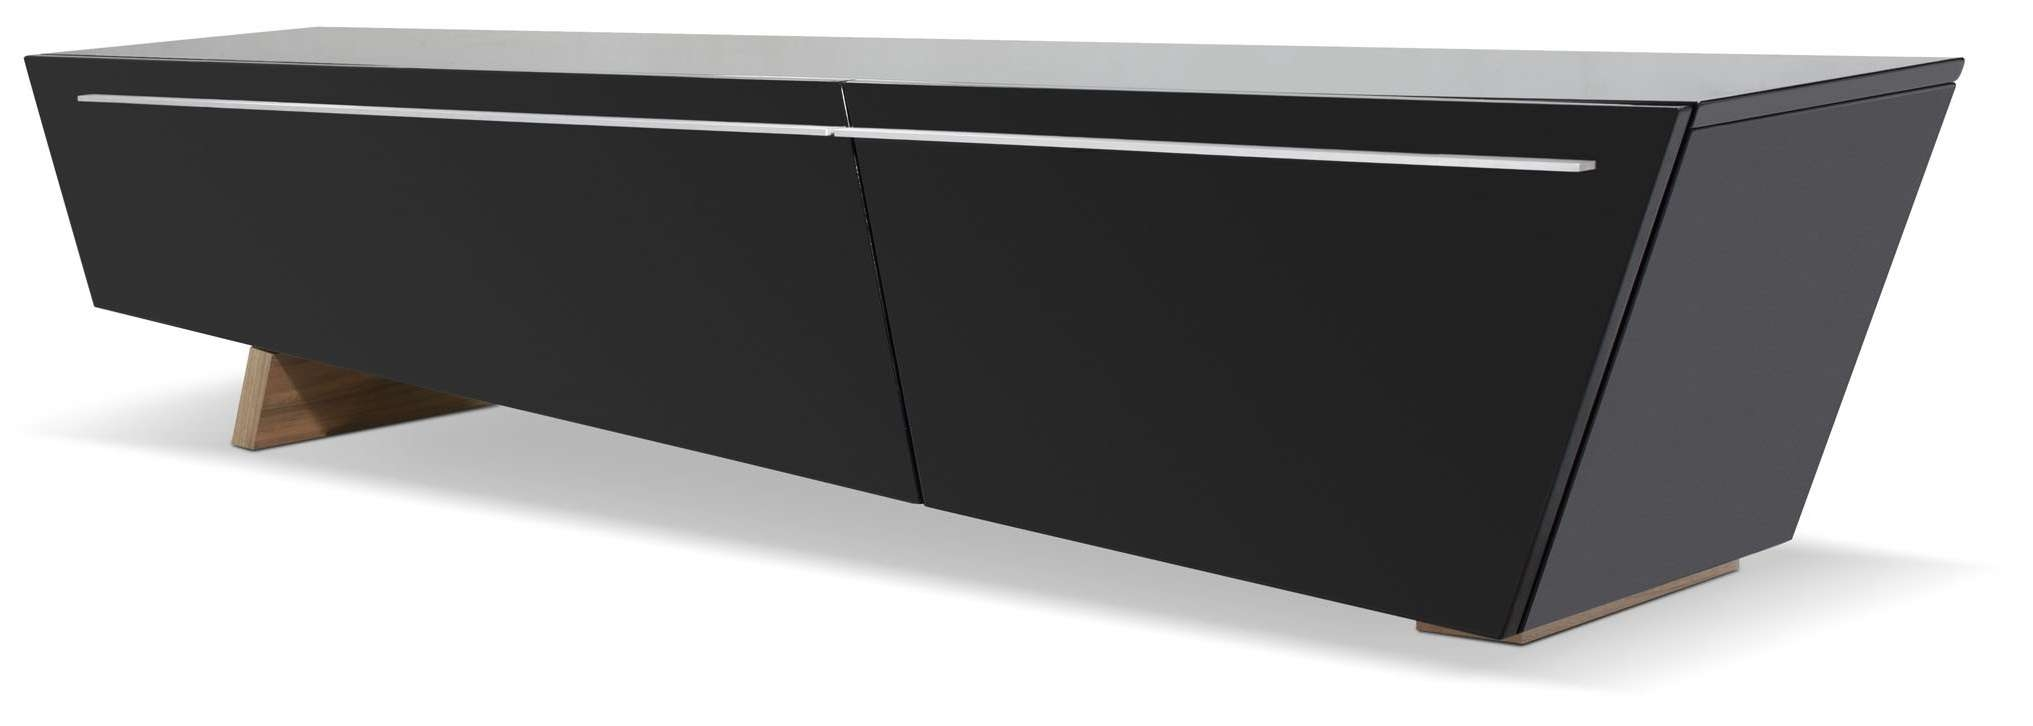 Modrest Barbara Contemporary Black Tv Stand Pertaining To Modern Black Tv Stands (View 14 of 20)